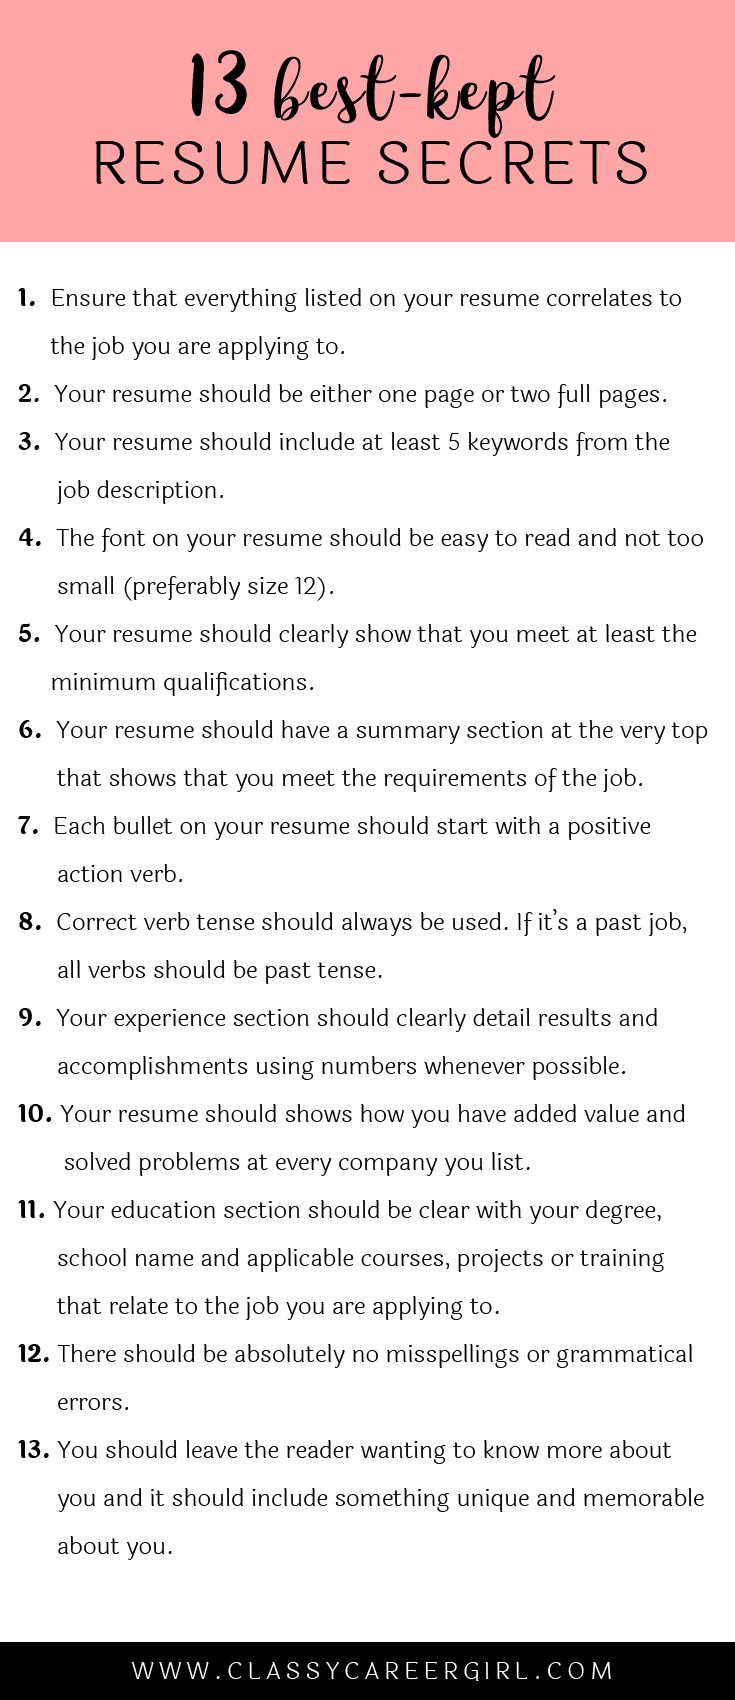 Opposenewapstandardsus  Pretty  Ideas About Resume On Pinterest  Cv Format Resume Cv And  With Extraordinary Some Hiring Managers Will Toss Your Resume Out If You Dont Know These  With Breathtaking Human Resources Resume Also Communication Skills Resume In Addition Restaurant Resume And Microsoft Word Resume Templates As Well As Templates For Resumes Additionally Special Skills For Resume From Pinterestcom With Opposenewapstandardsus  Extraordinary  Ideas About Resume On Pinterest  Cv Format Resume Cv And  With Breathtaking Some Hiring Managers Will Toss Your Resume Out If You Dont Know These  And Pretty Human Resources Resume Also Communication Skills Resume In Addition Restaurant Resume From Pinterestcom